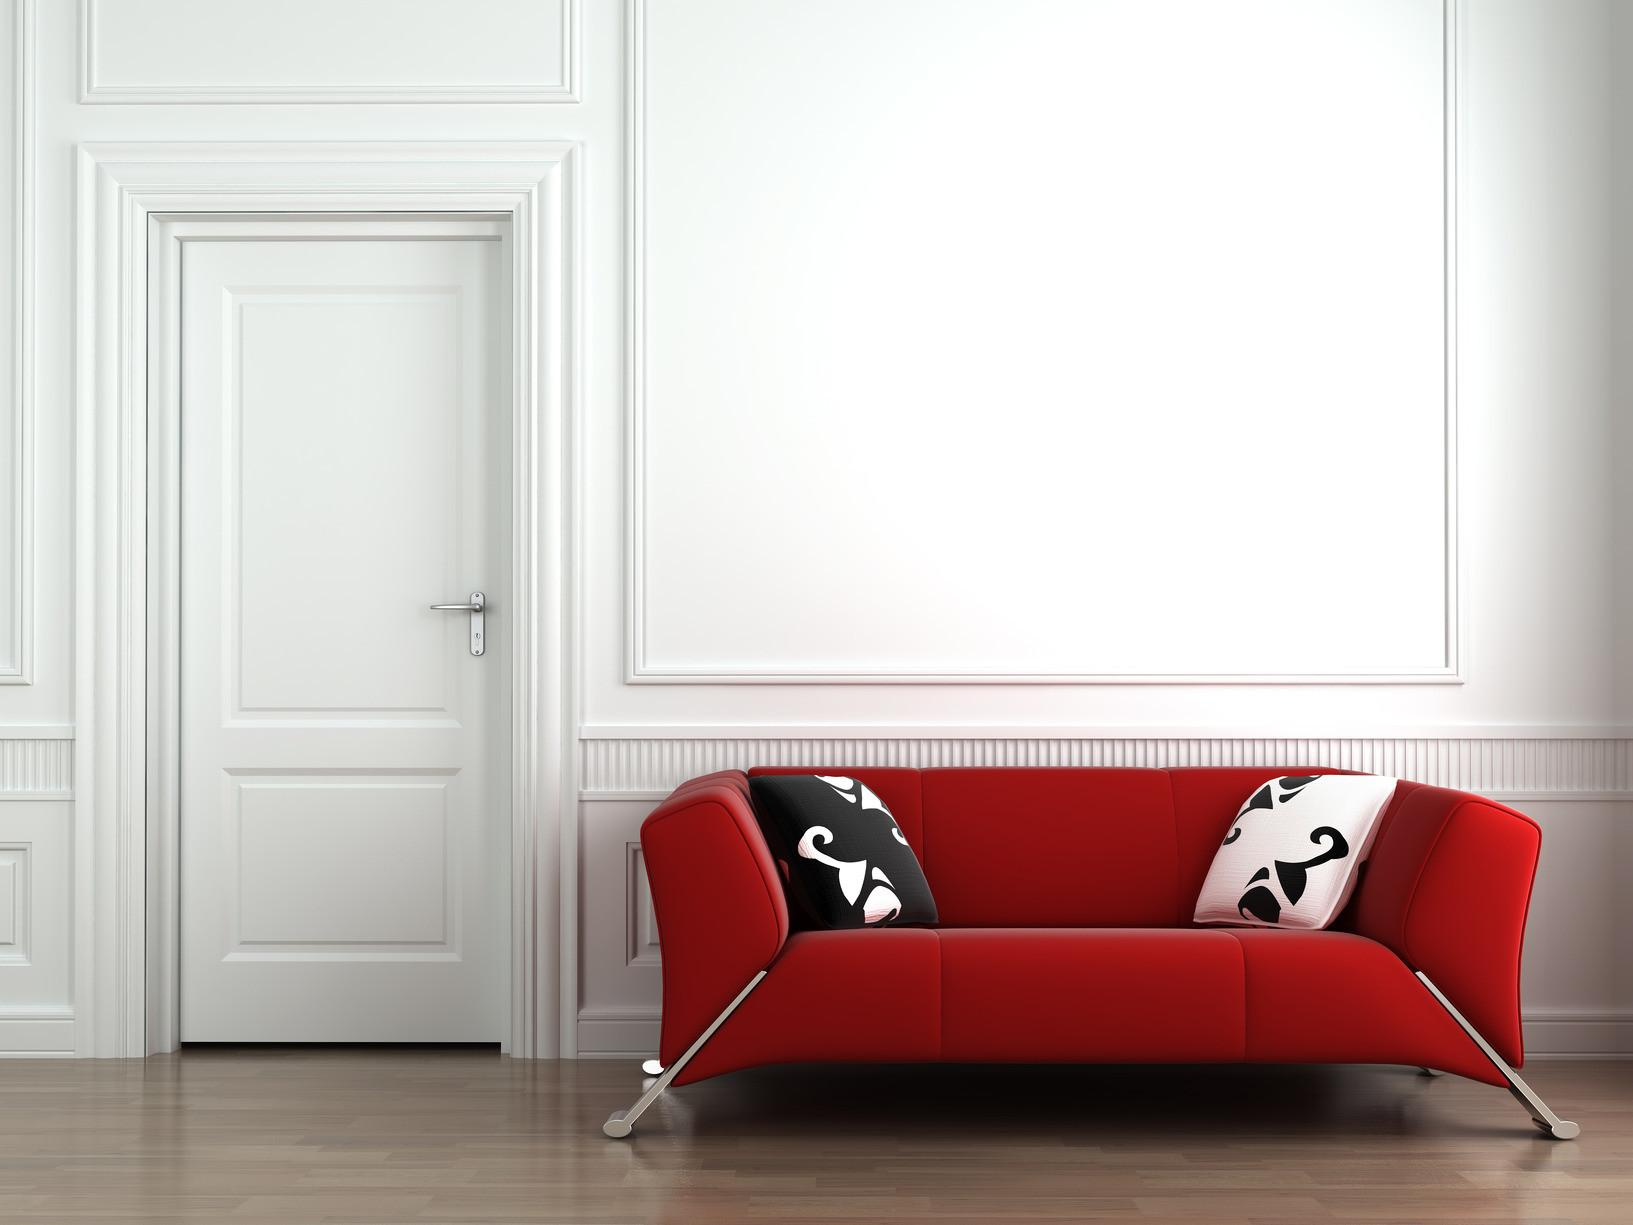 Hallmark Risk Red Couch White Interior Wall